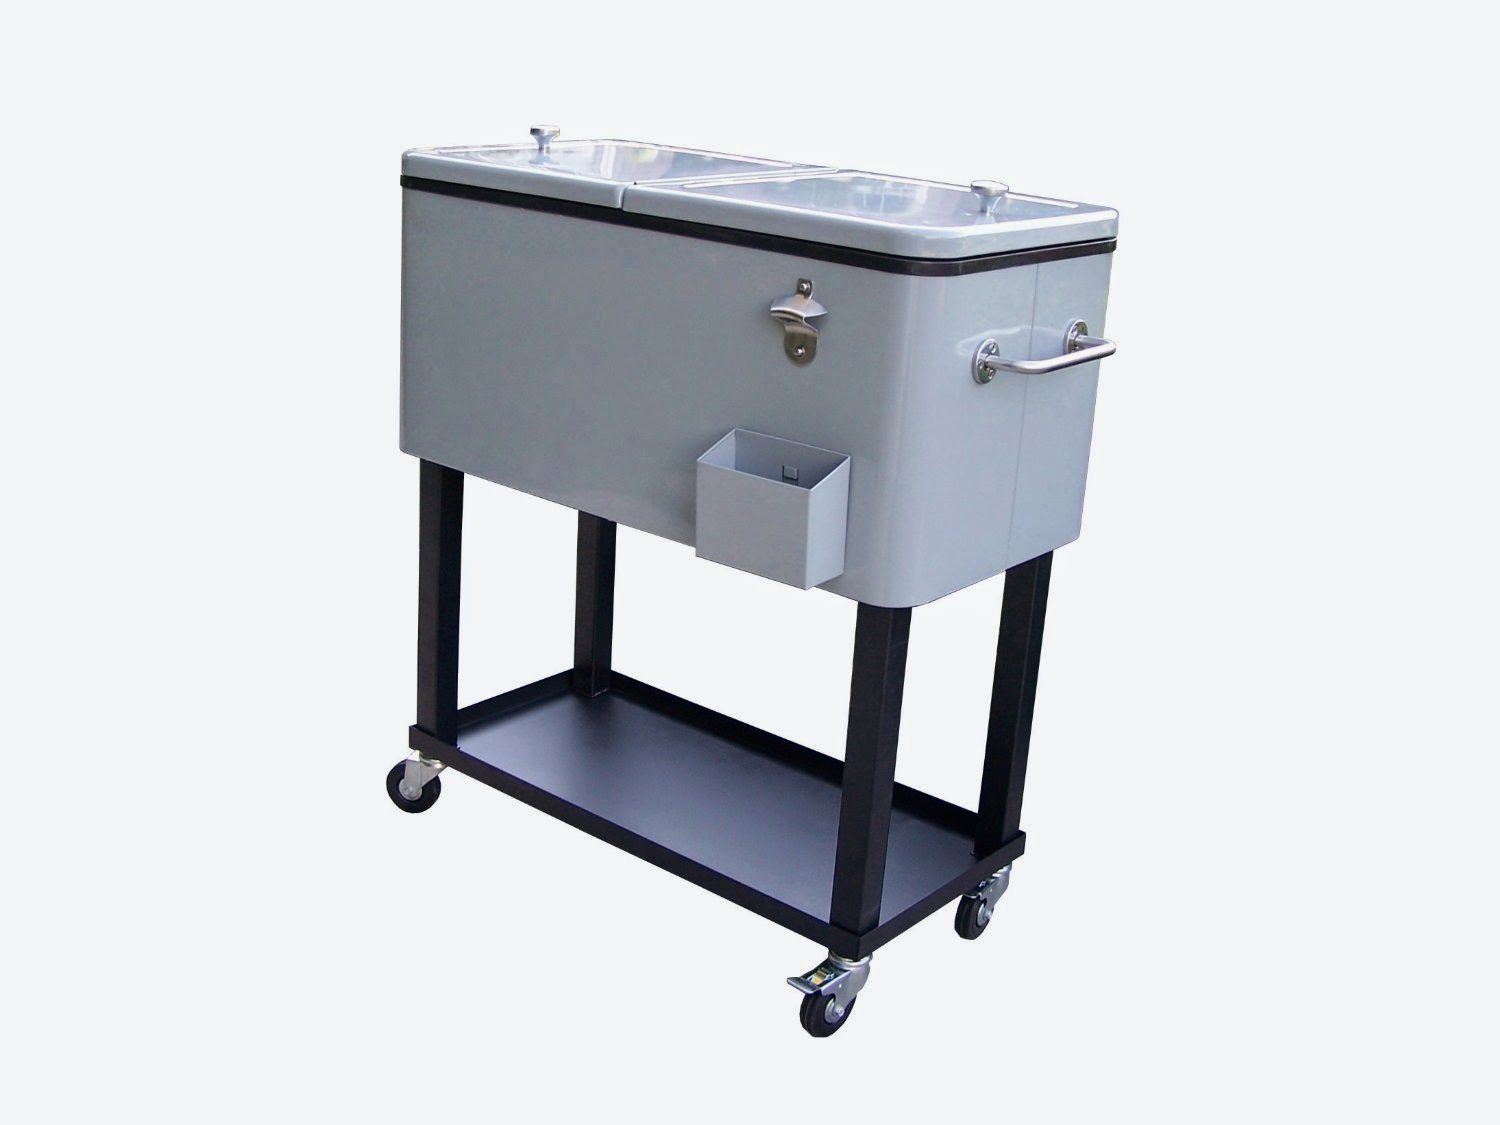 Stainless Steel Cooler: Stainless Steel Patio Cooler